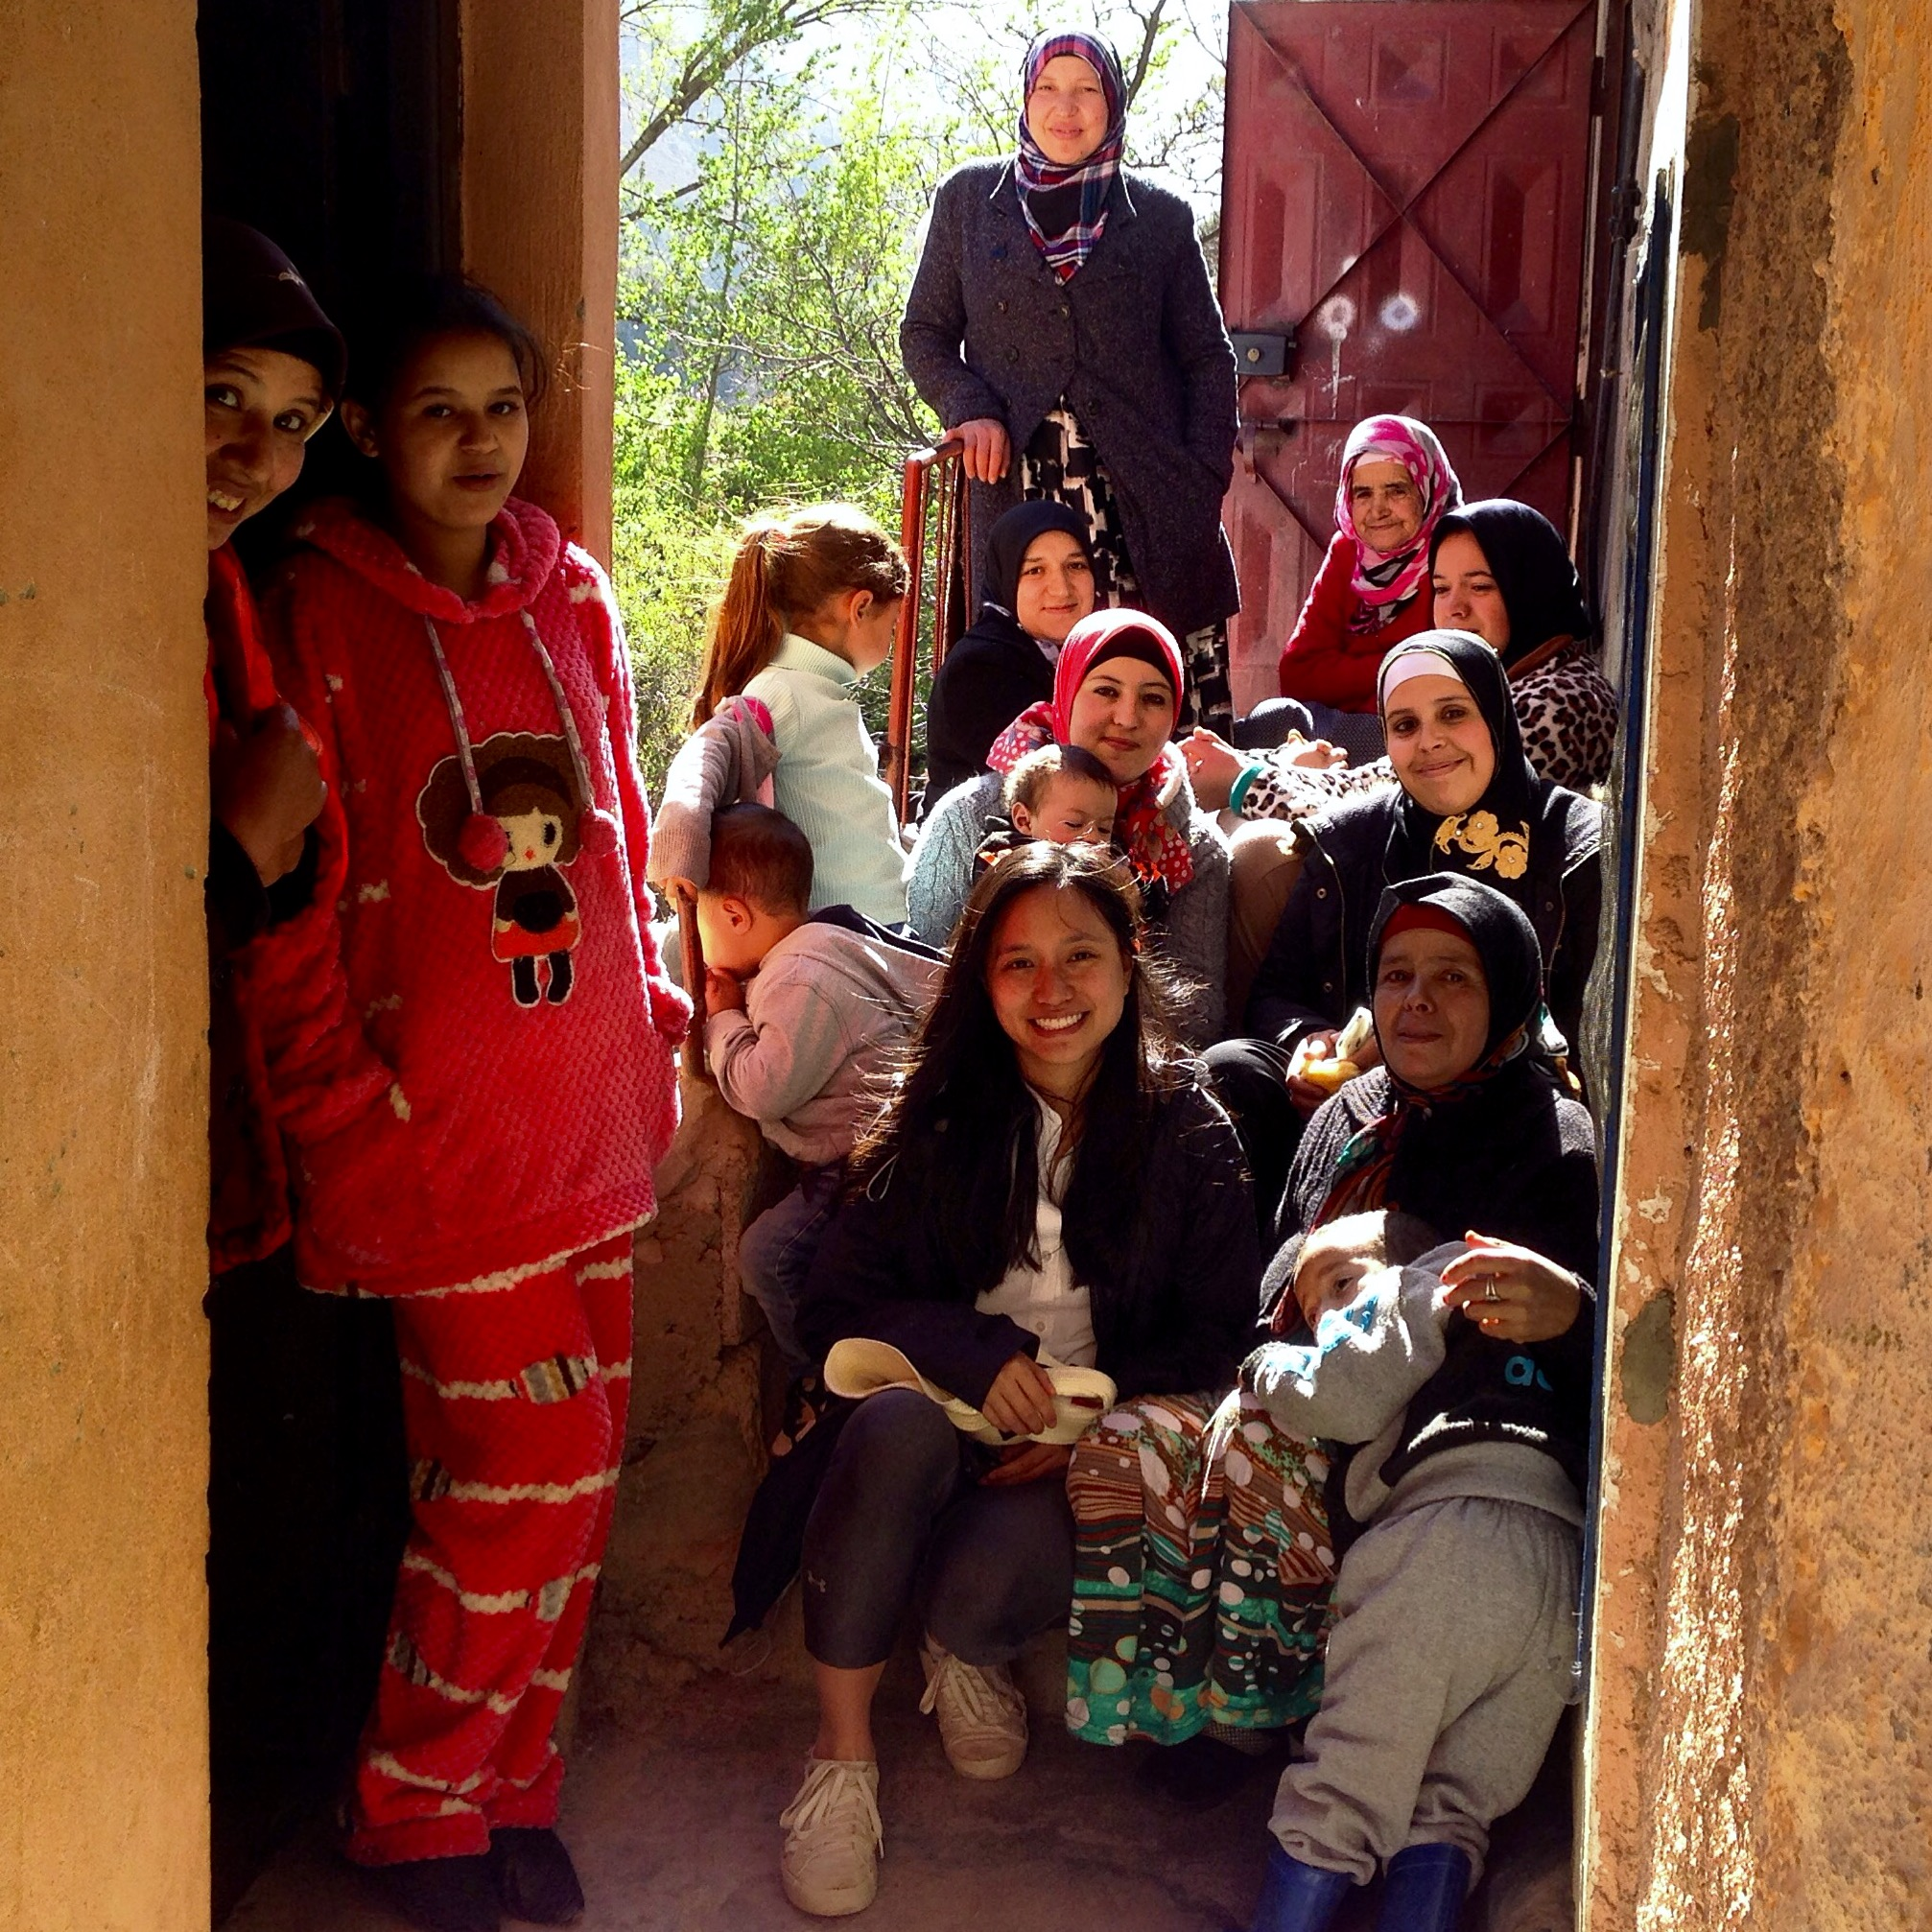 Lisa Cheung and artisans at Atlas Mountain in Morocco